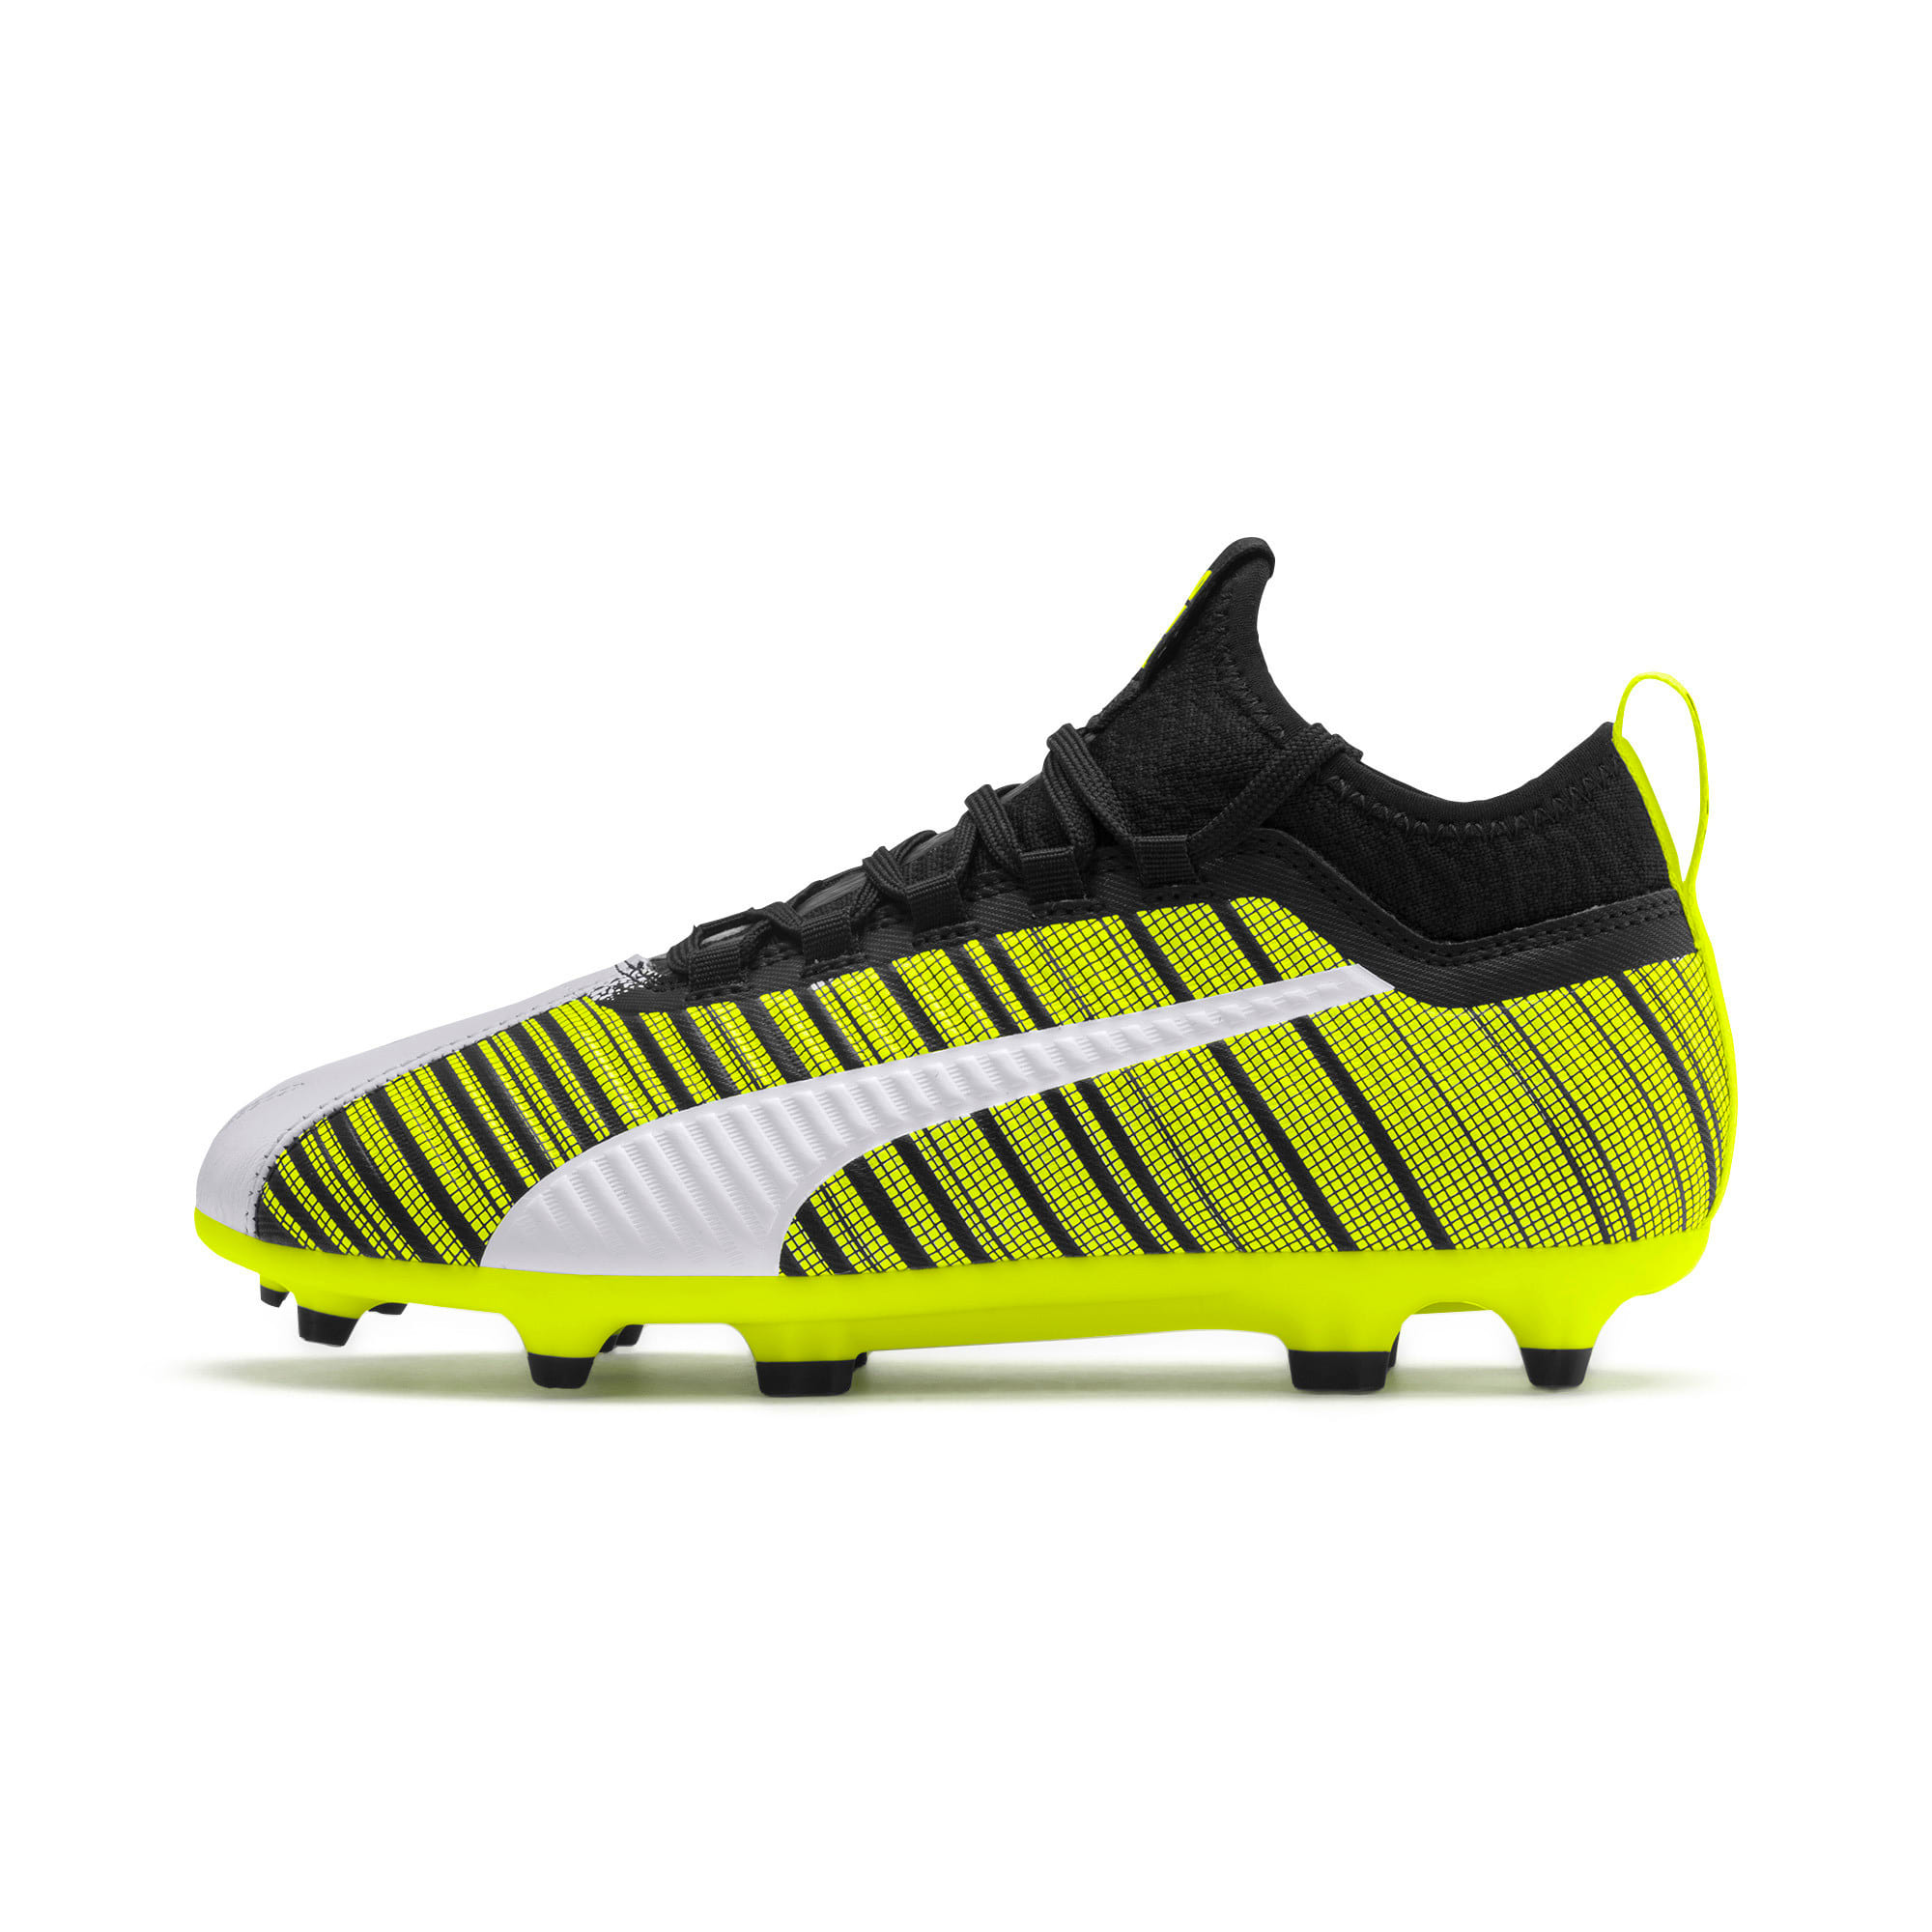 Thumbnail 1 of Chaussure de foot PUMA ONE 5.3 FG/AG Youth, White-Black-Yellow Alert, medium